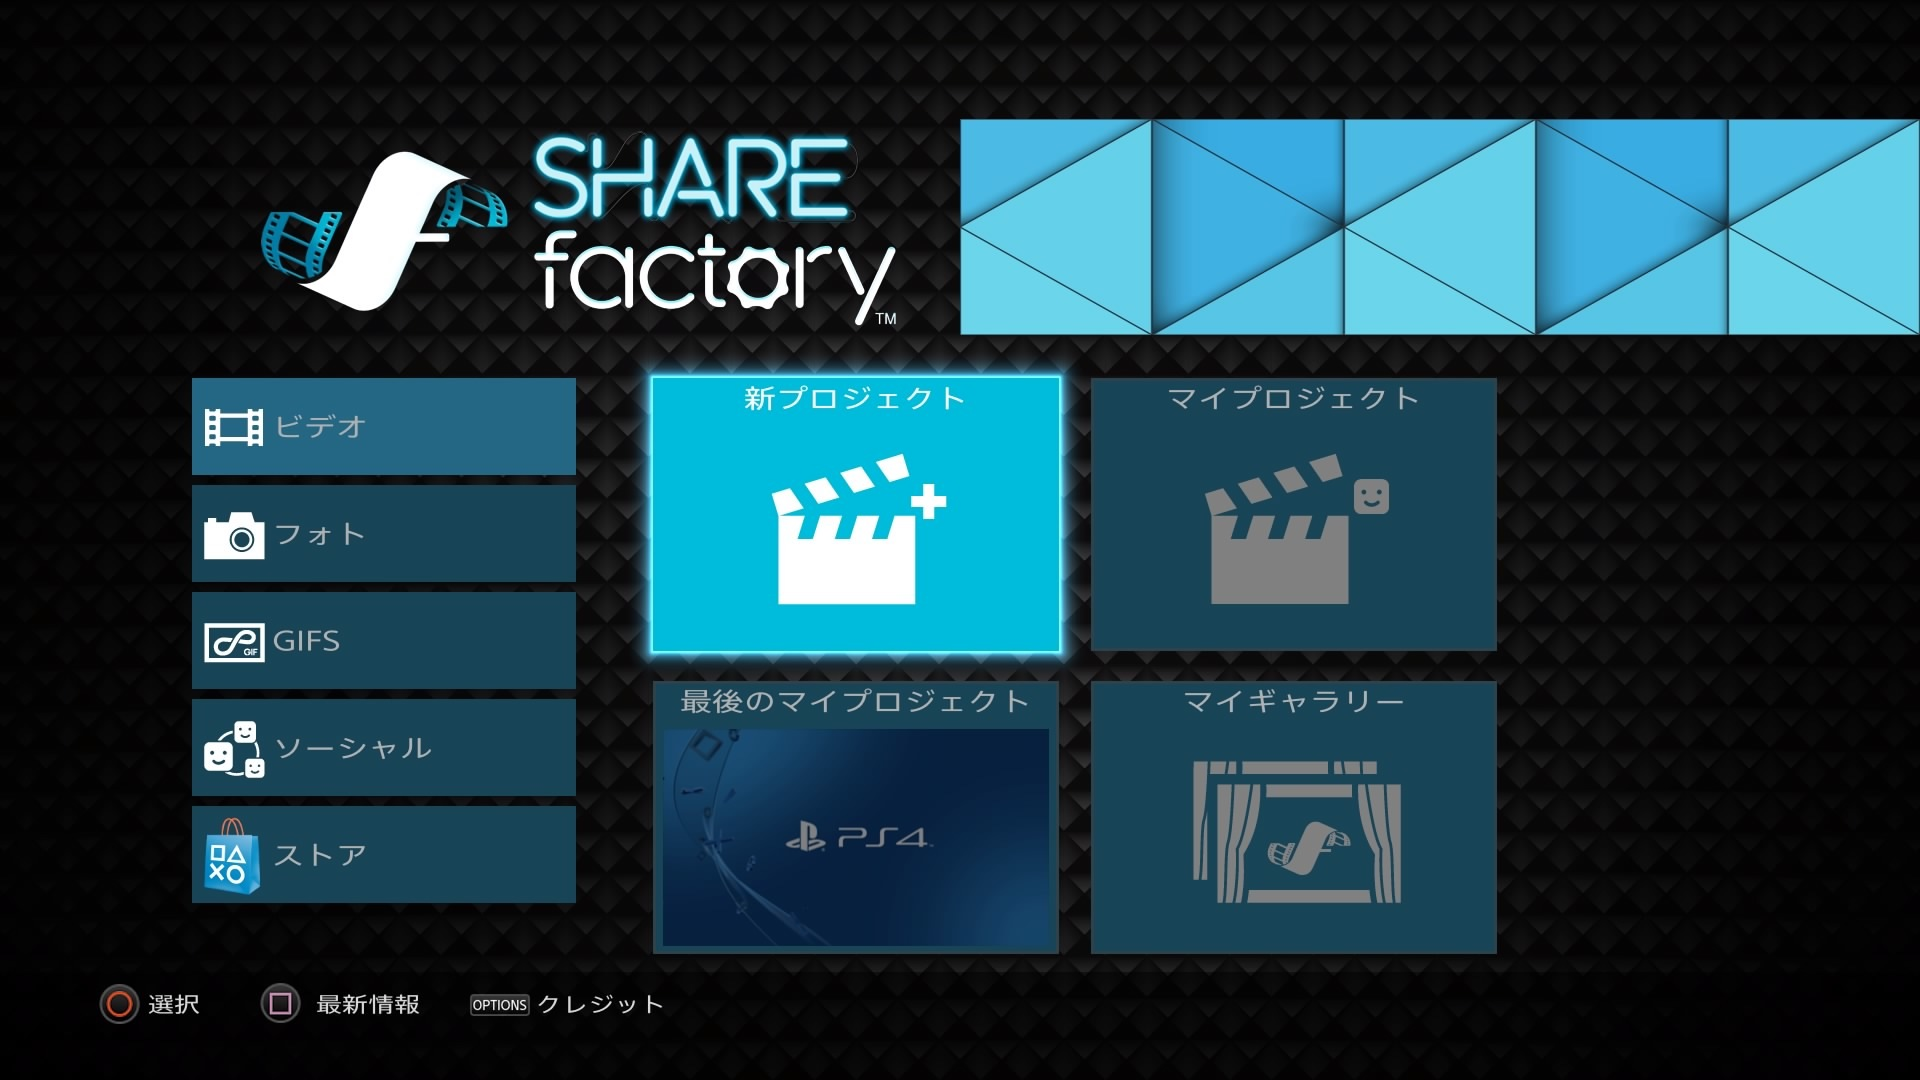 SHAREfactory™_20161118162855